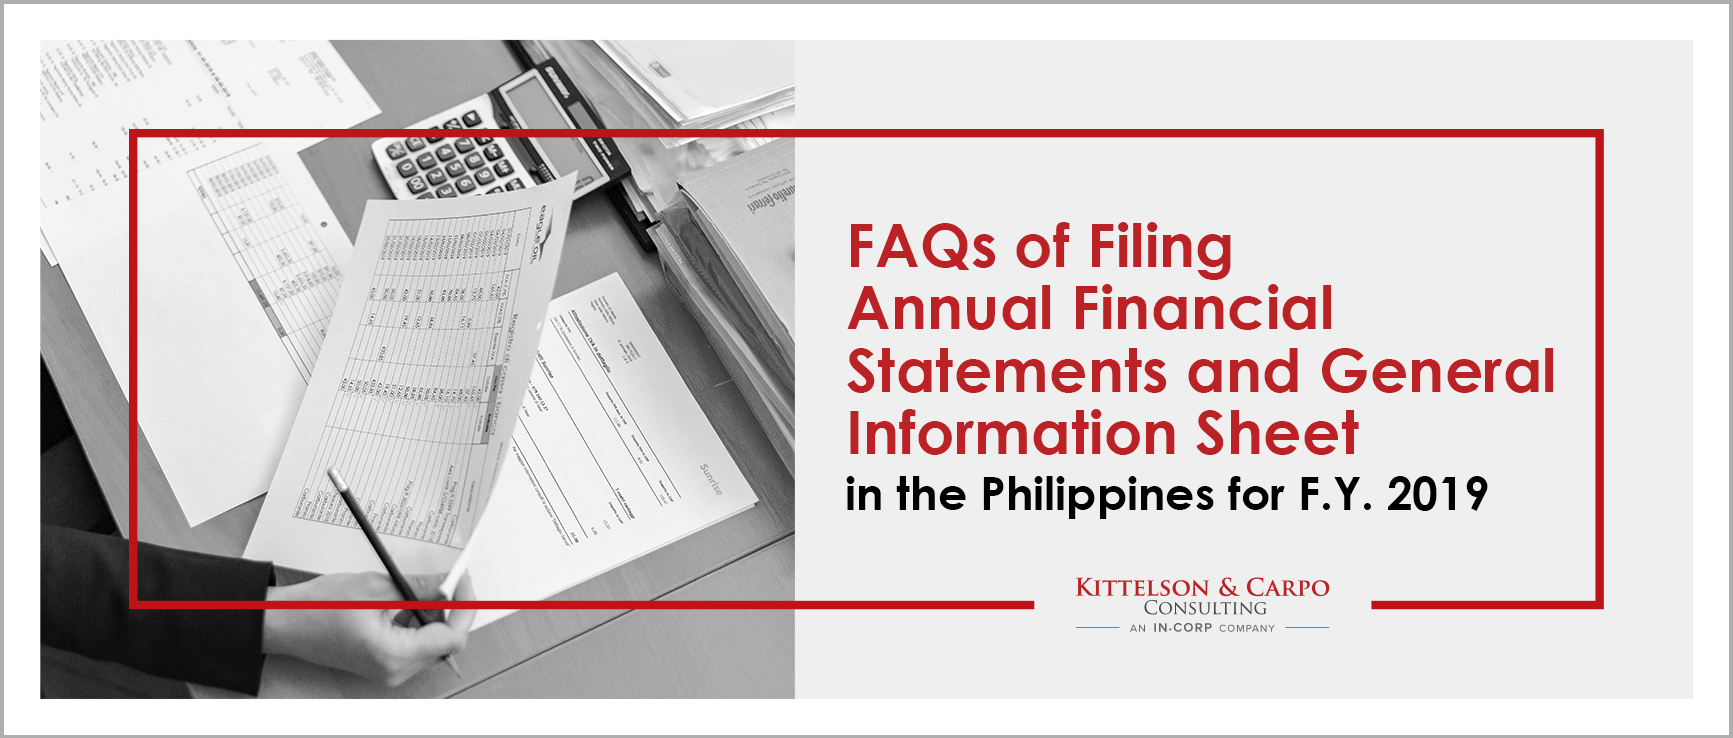 FAQs of Filing Annual Financial Statements and General Information Sheet